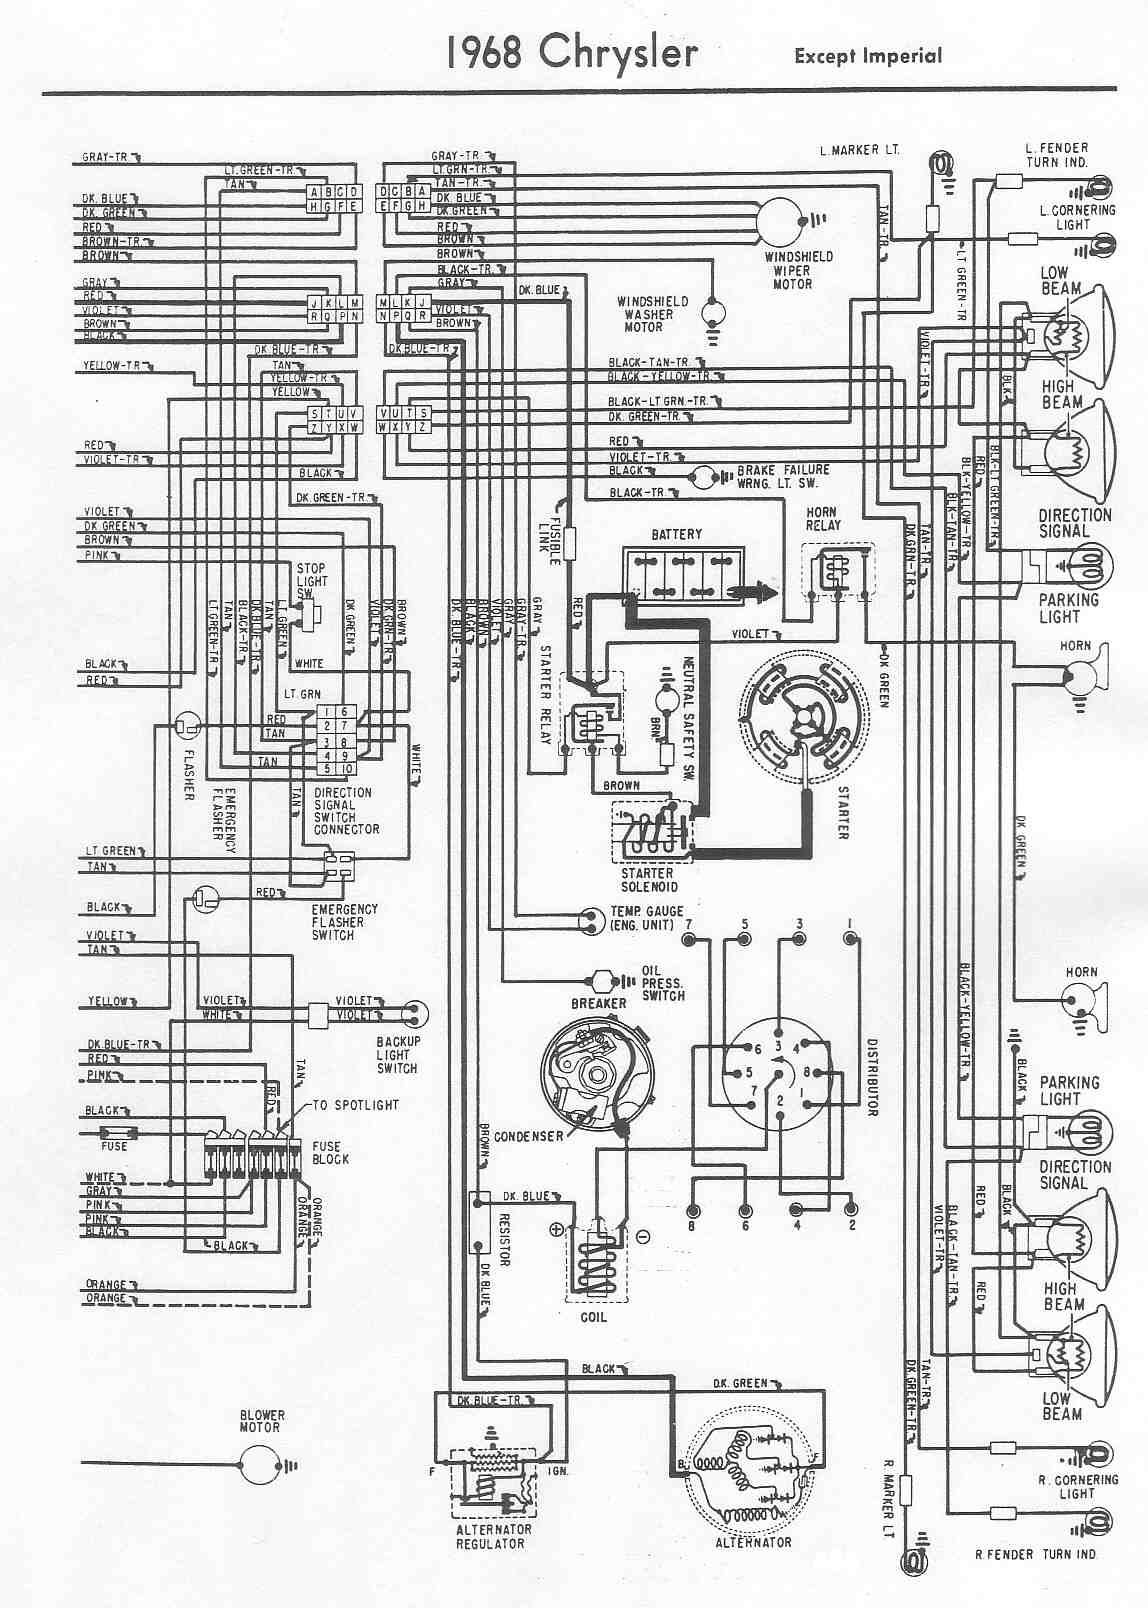 68 dodge coronet wiring diagram simple wiring schema 1962 corvair wiring diagram 1965 dodge coronet [ 1148 x 1608 Pixel ]